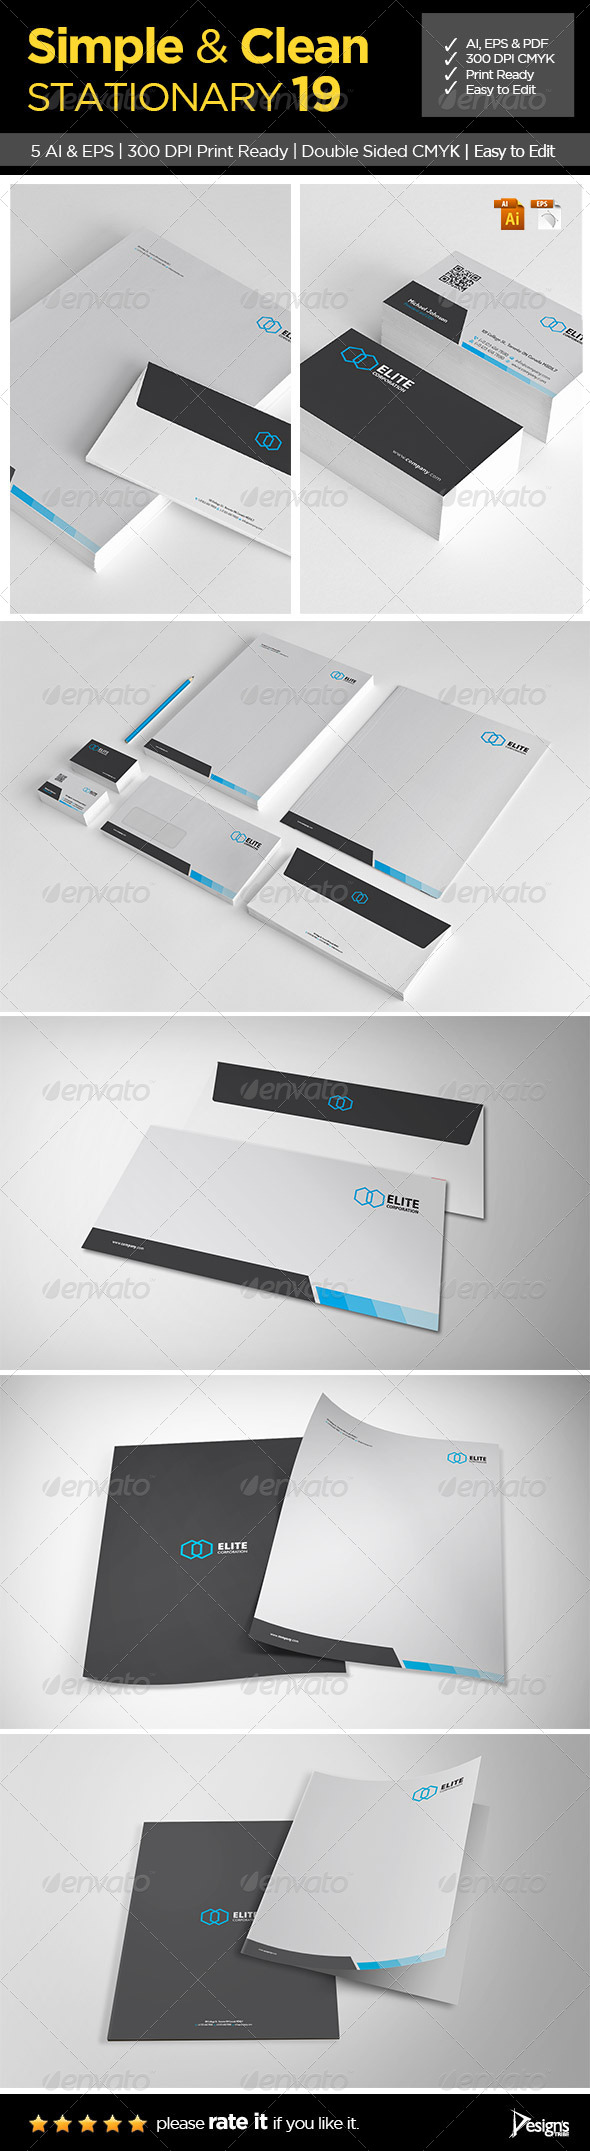 GraphicRiver Simple and Clean Stationary 19 6517864